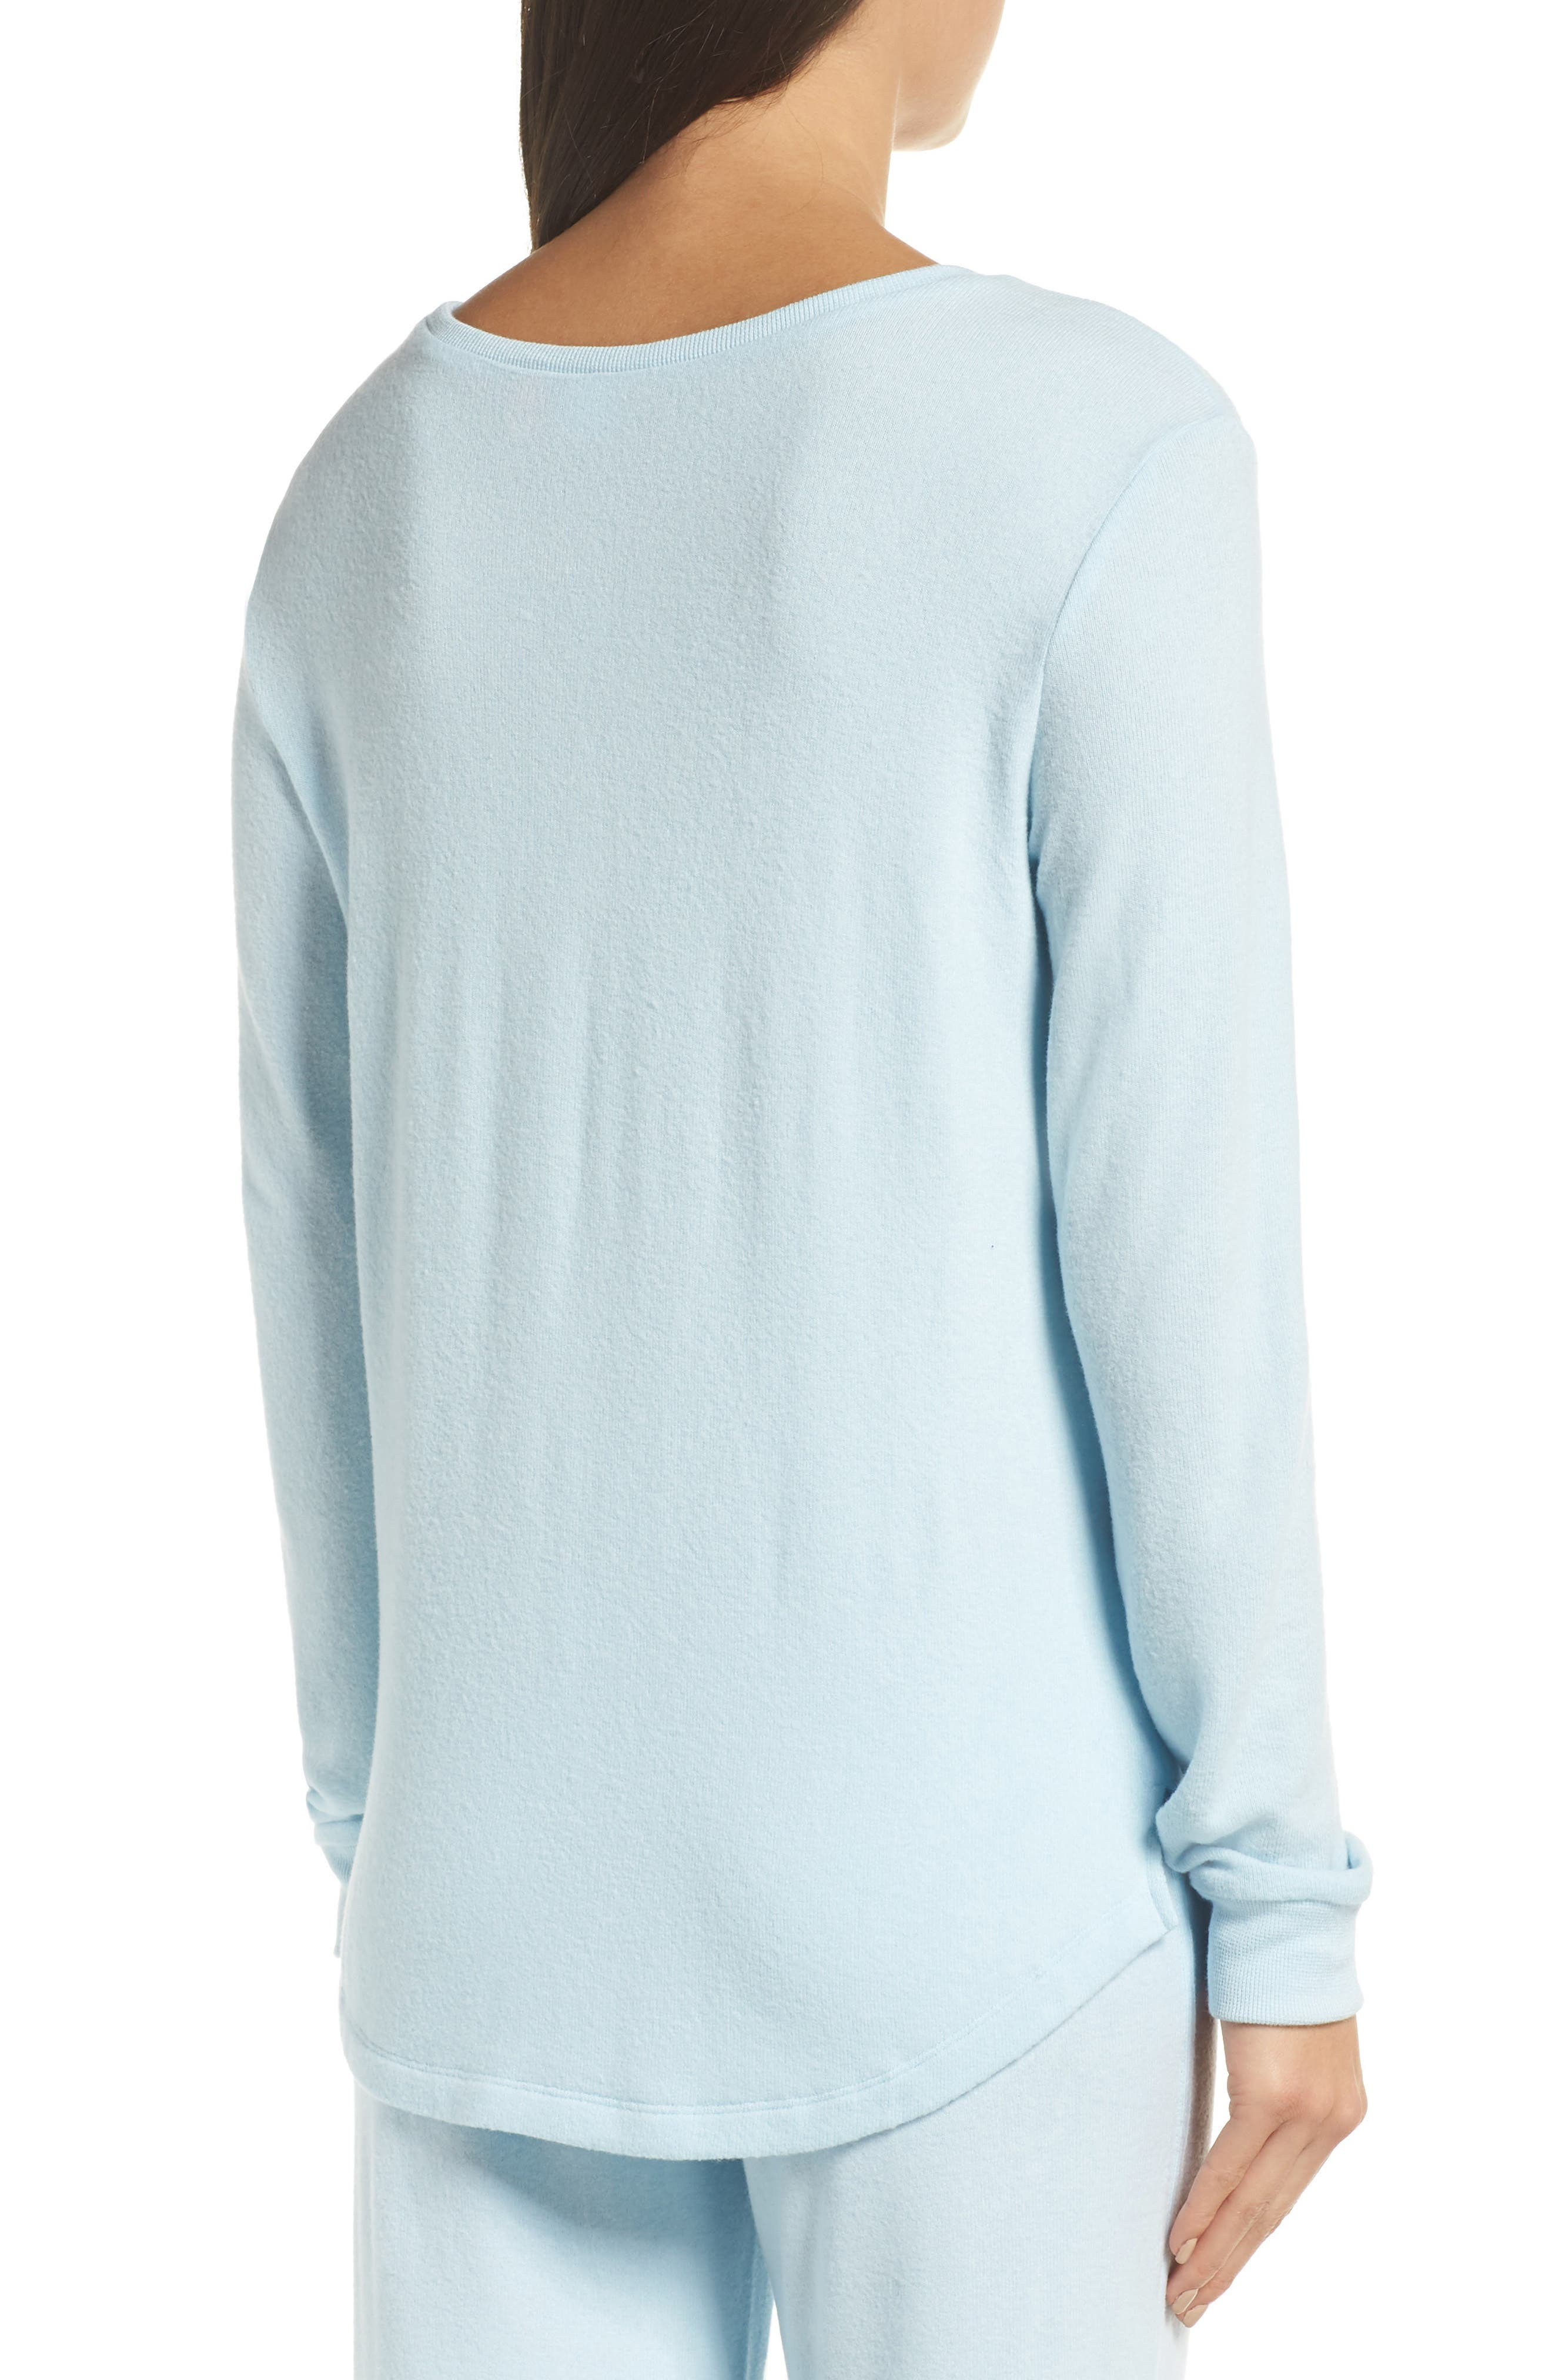 Too Cool Pullover,                             Alternate thumbnail 2, color,                             BLUE OMPHALODES